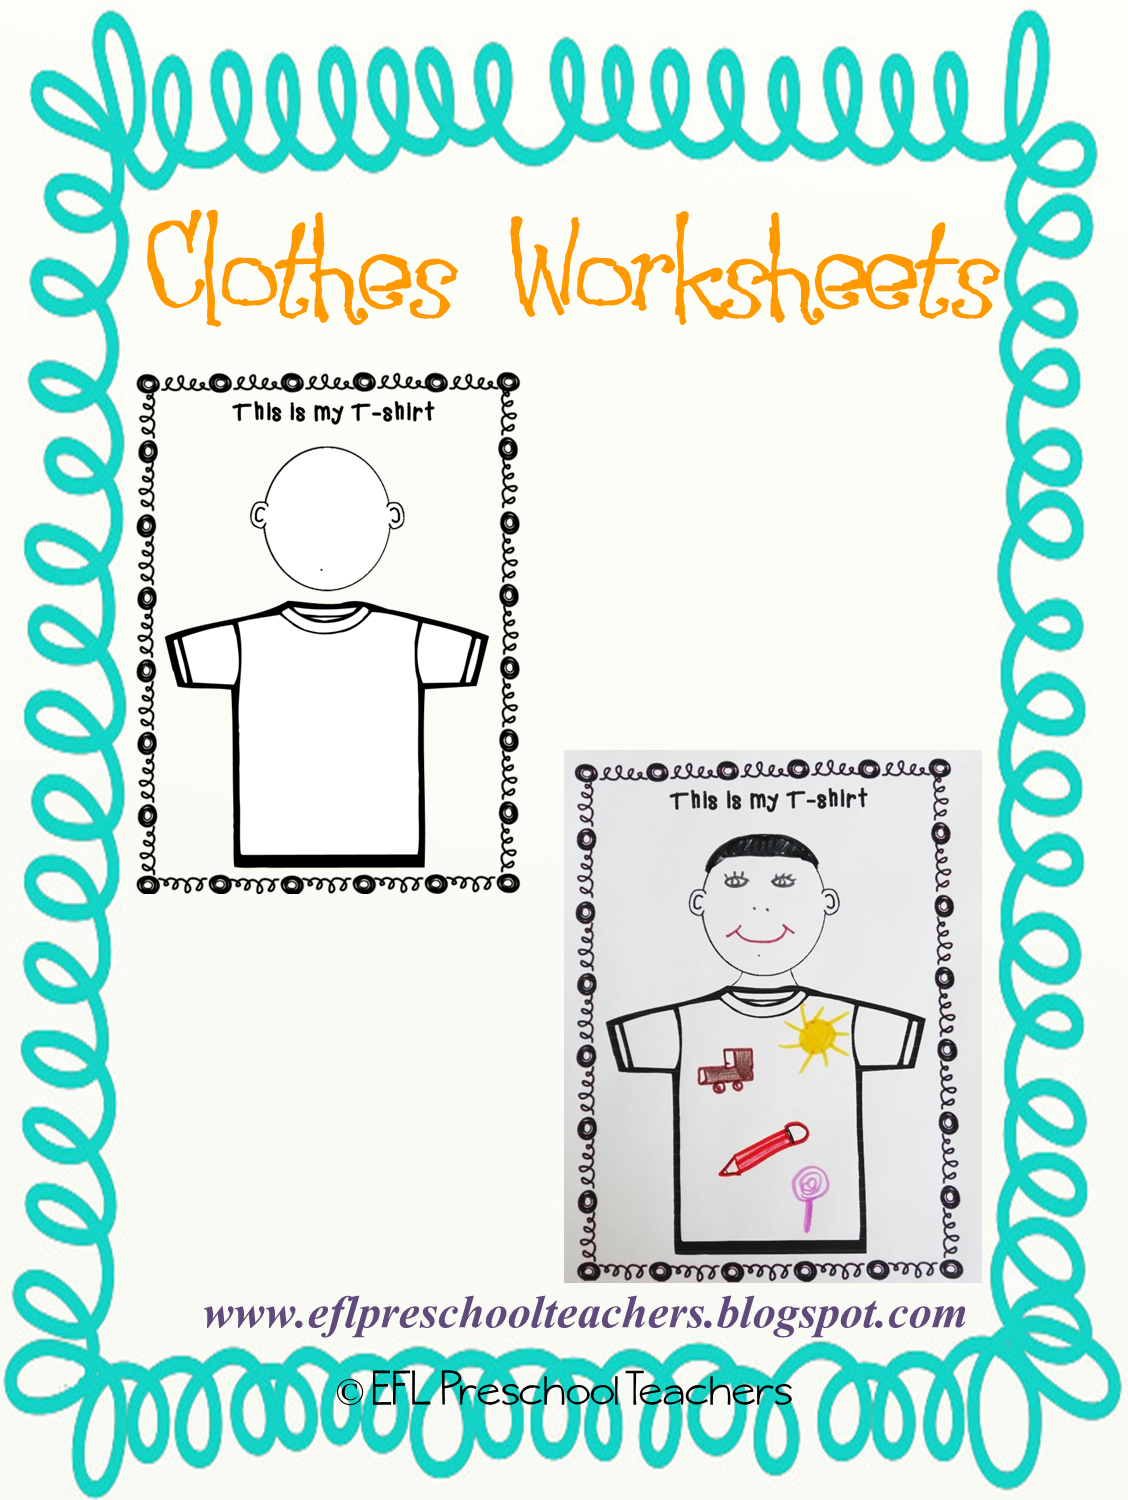 Esl Efl Preschool Teachers Clothes Worksheets And Flashcards For Esl